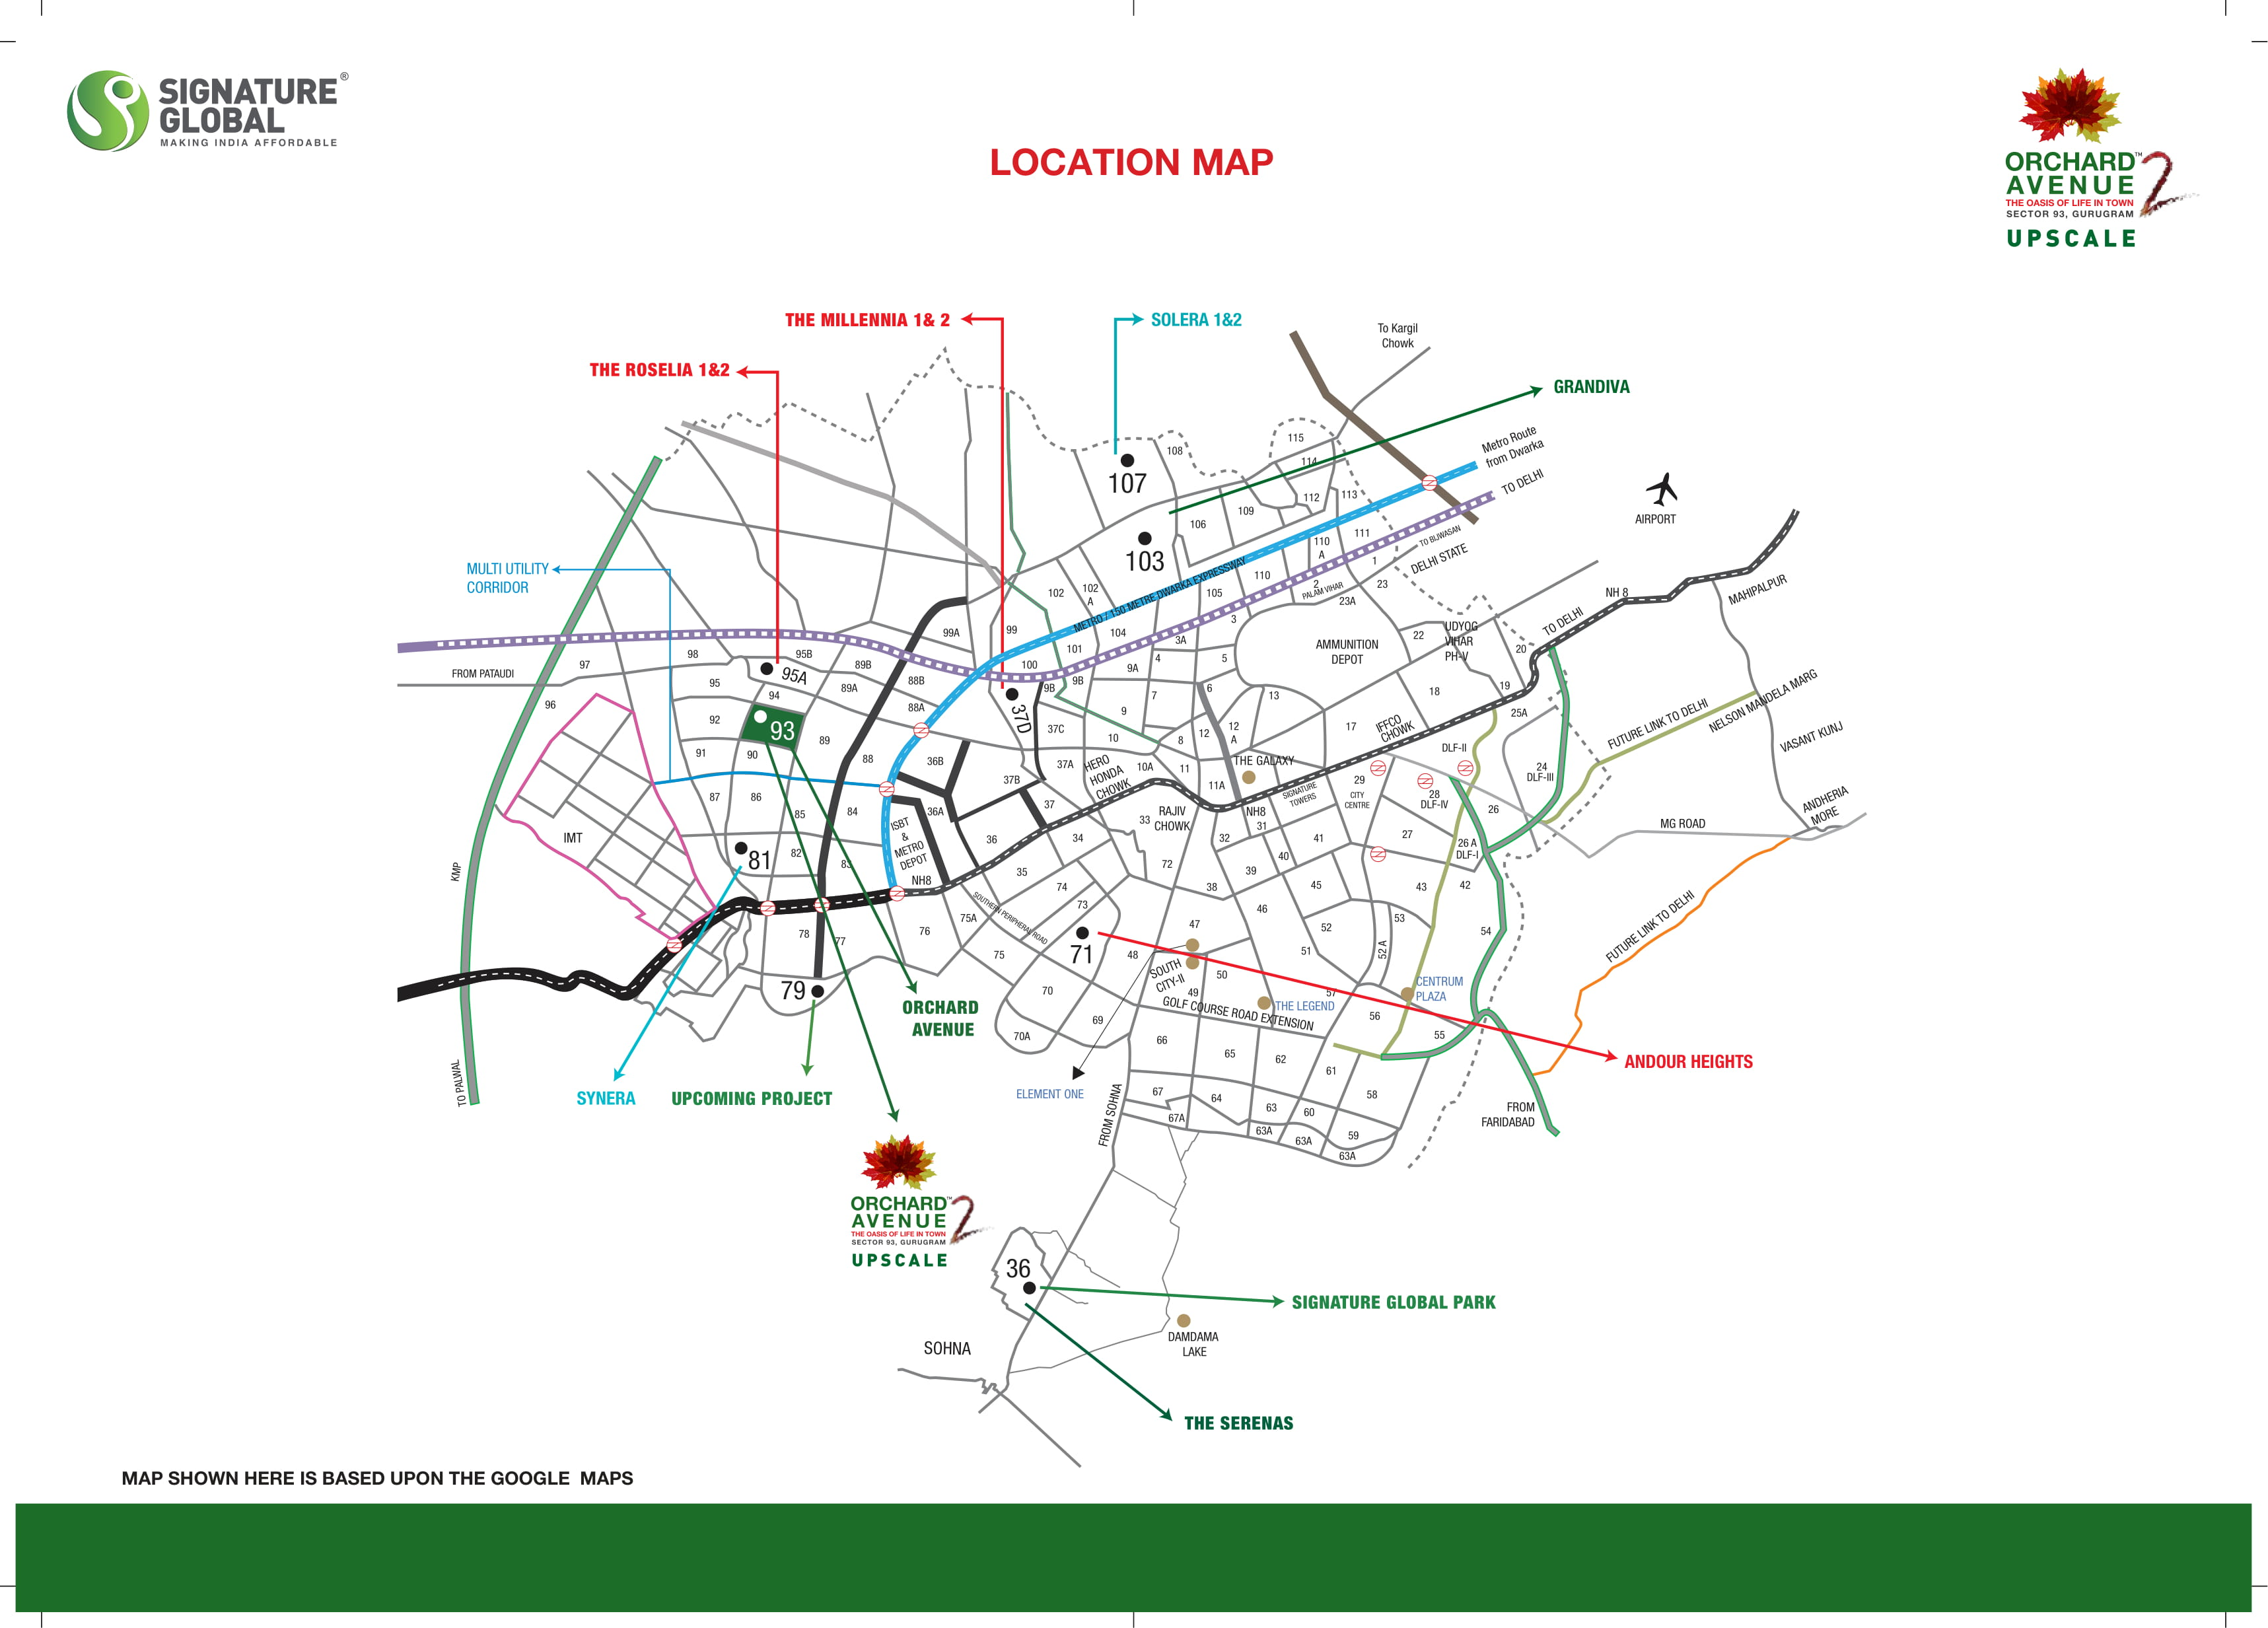 Signature-Global-Orchard-Avenue-2-Location-Map